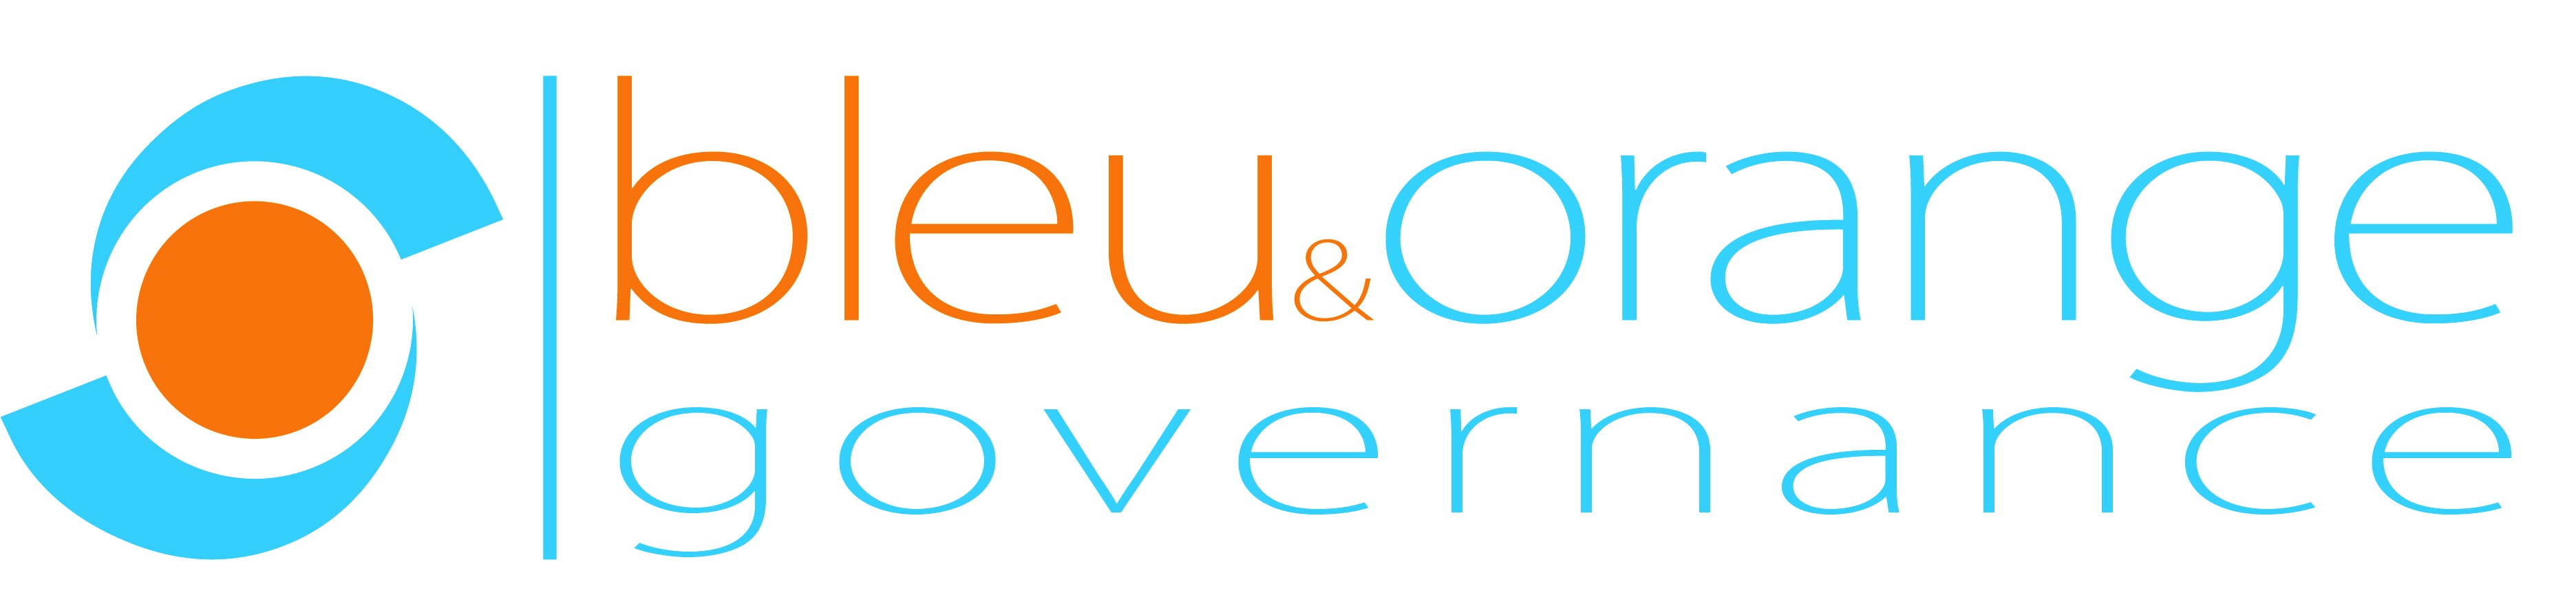 bleu-and-orange-governance